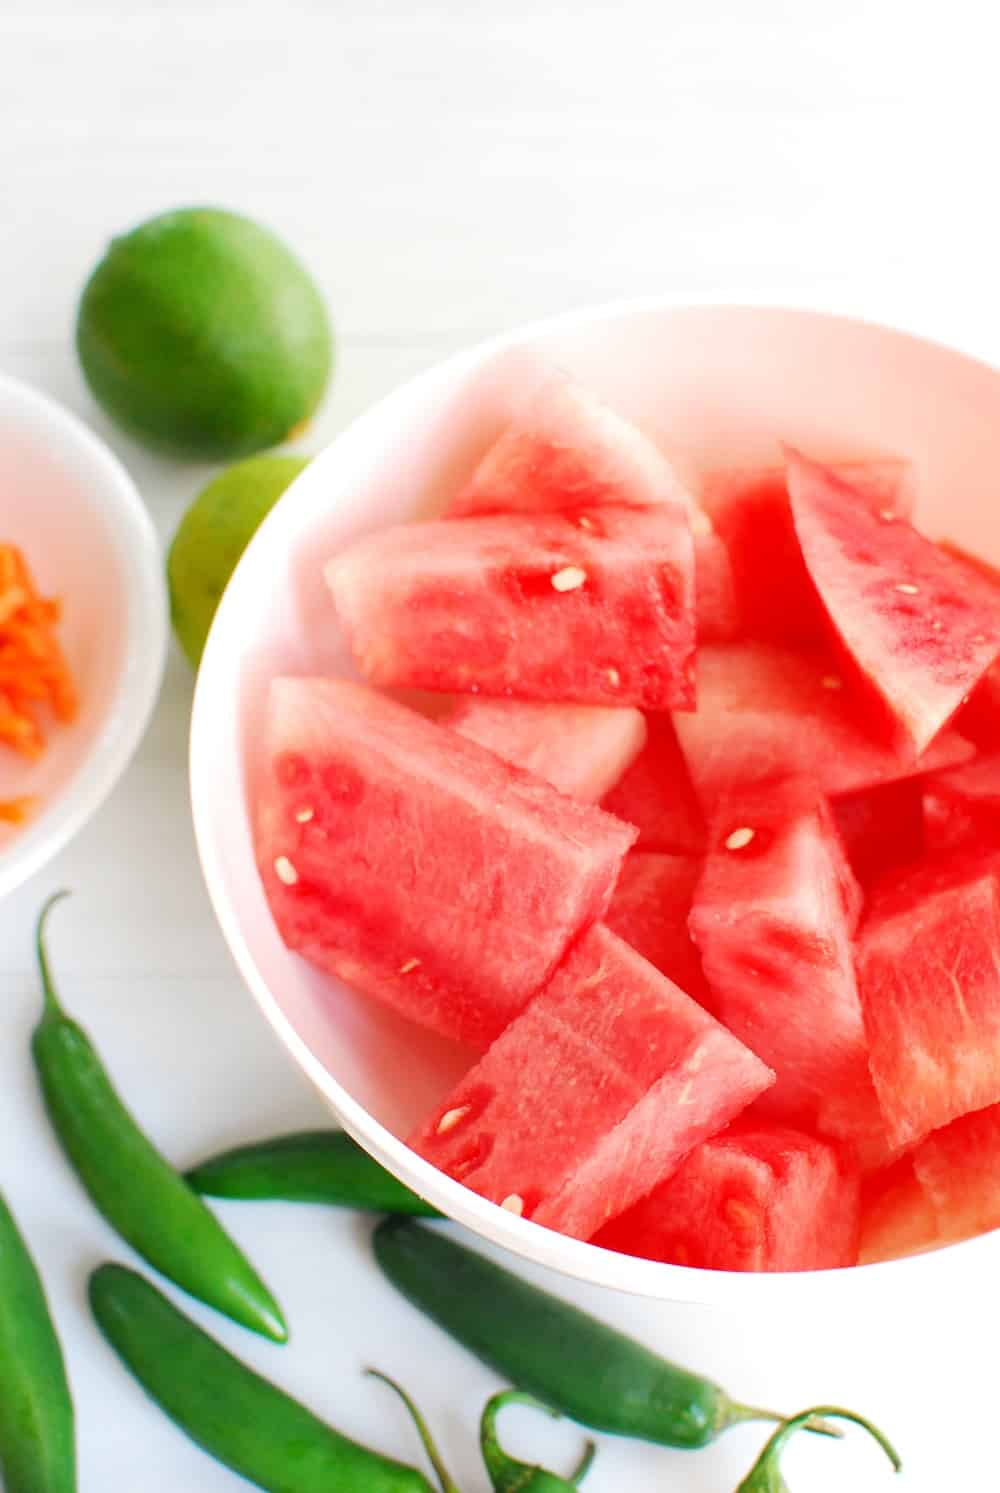 a bowl full of chopped watermelon next to some serrano peppers and a lime